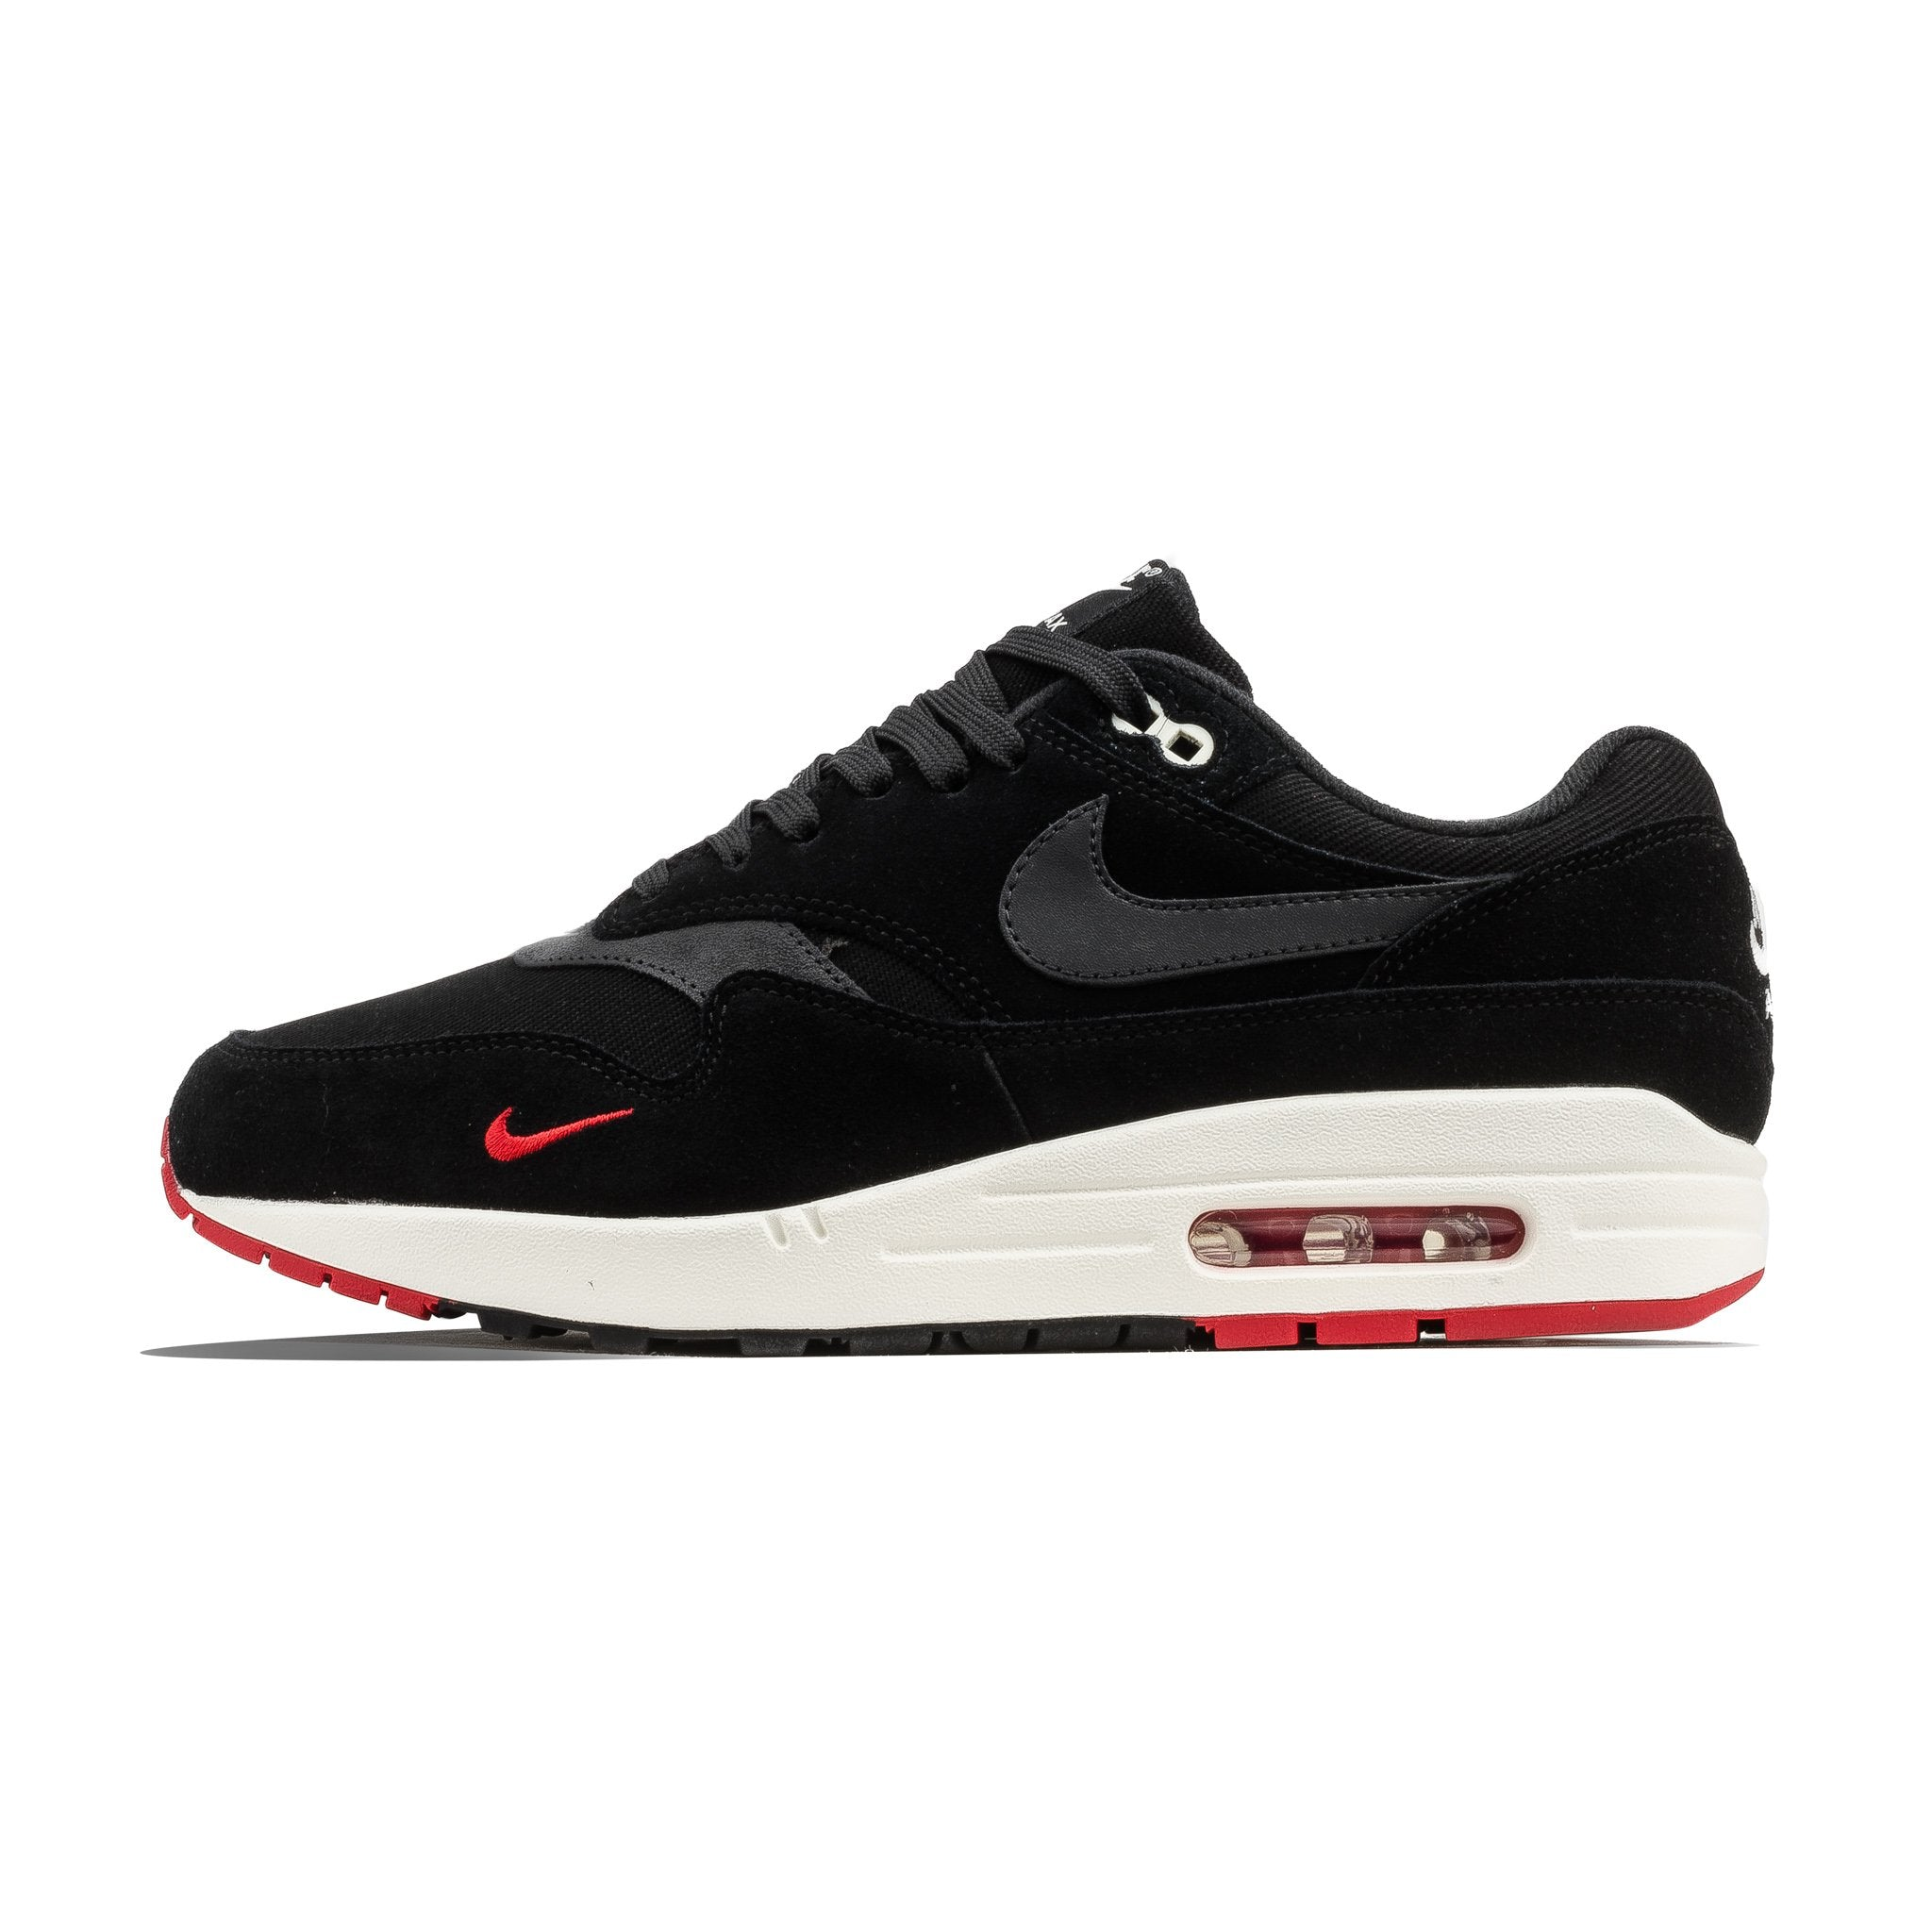 hot sale online 794eb 47e55 Air Max 1 Premium 875844-007 Black